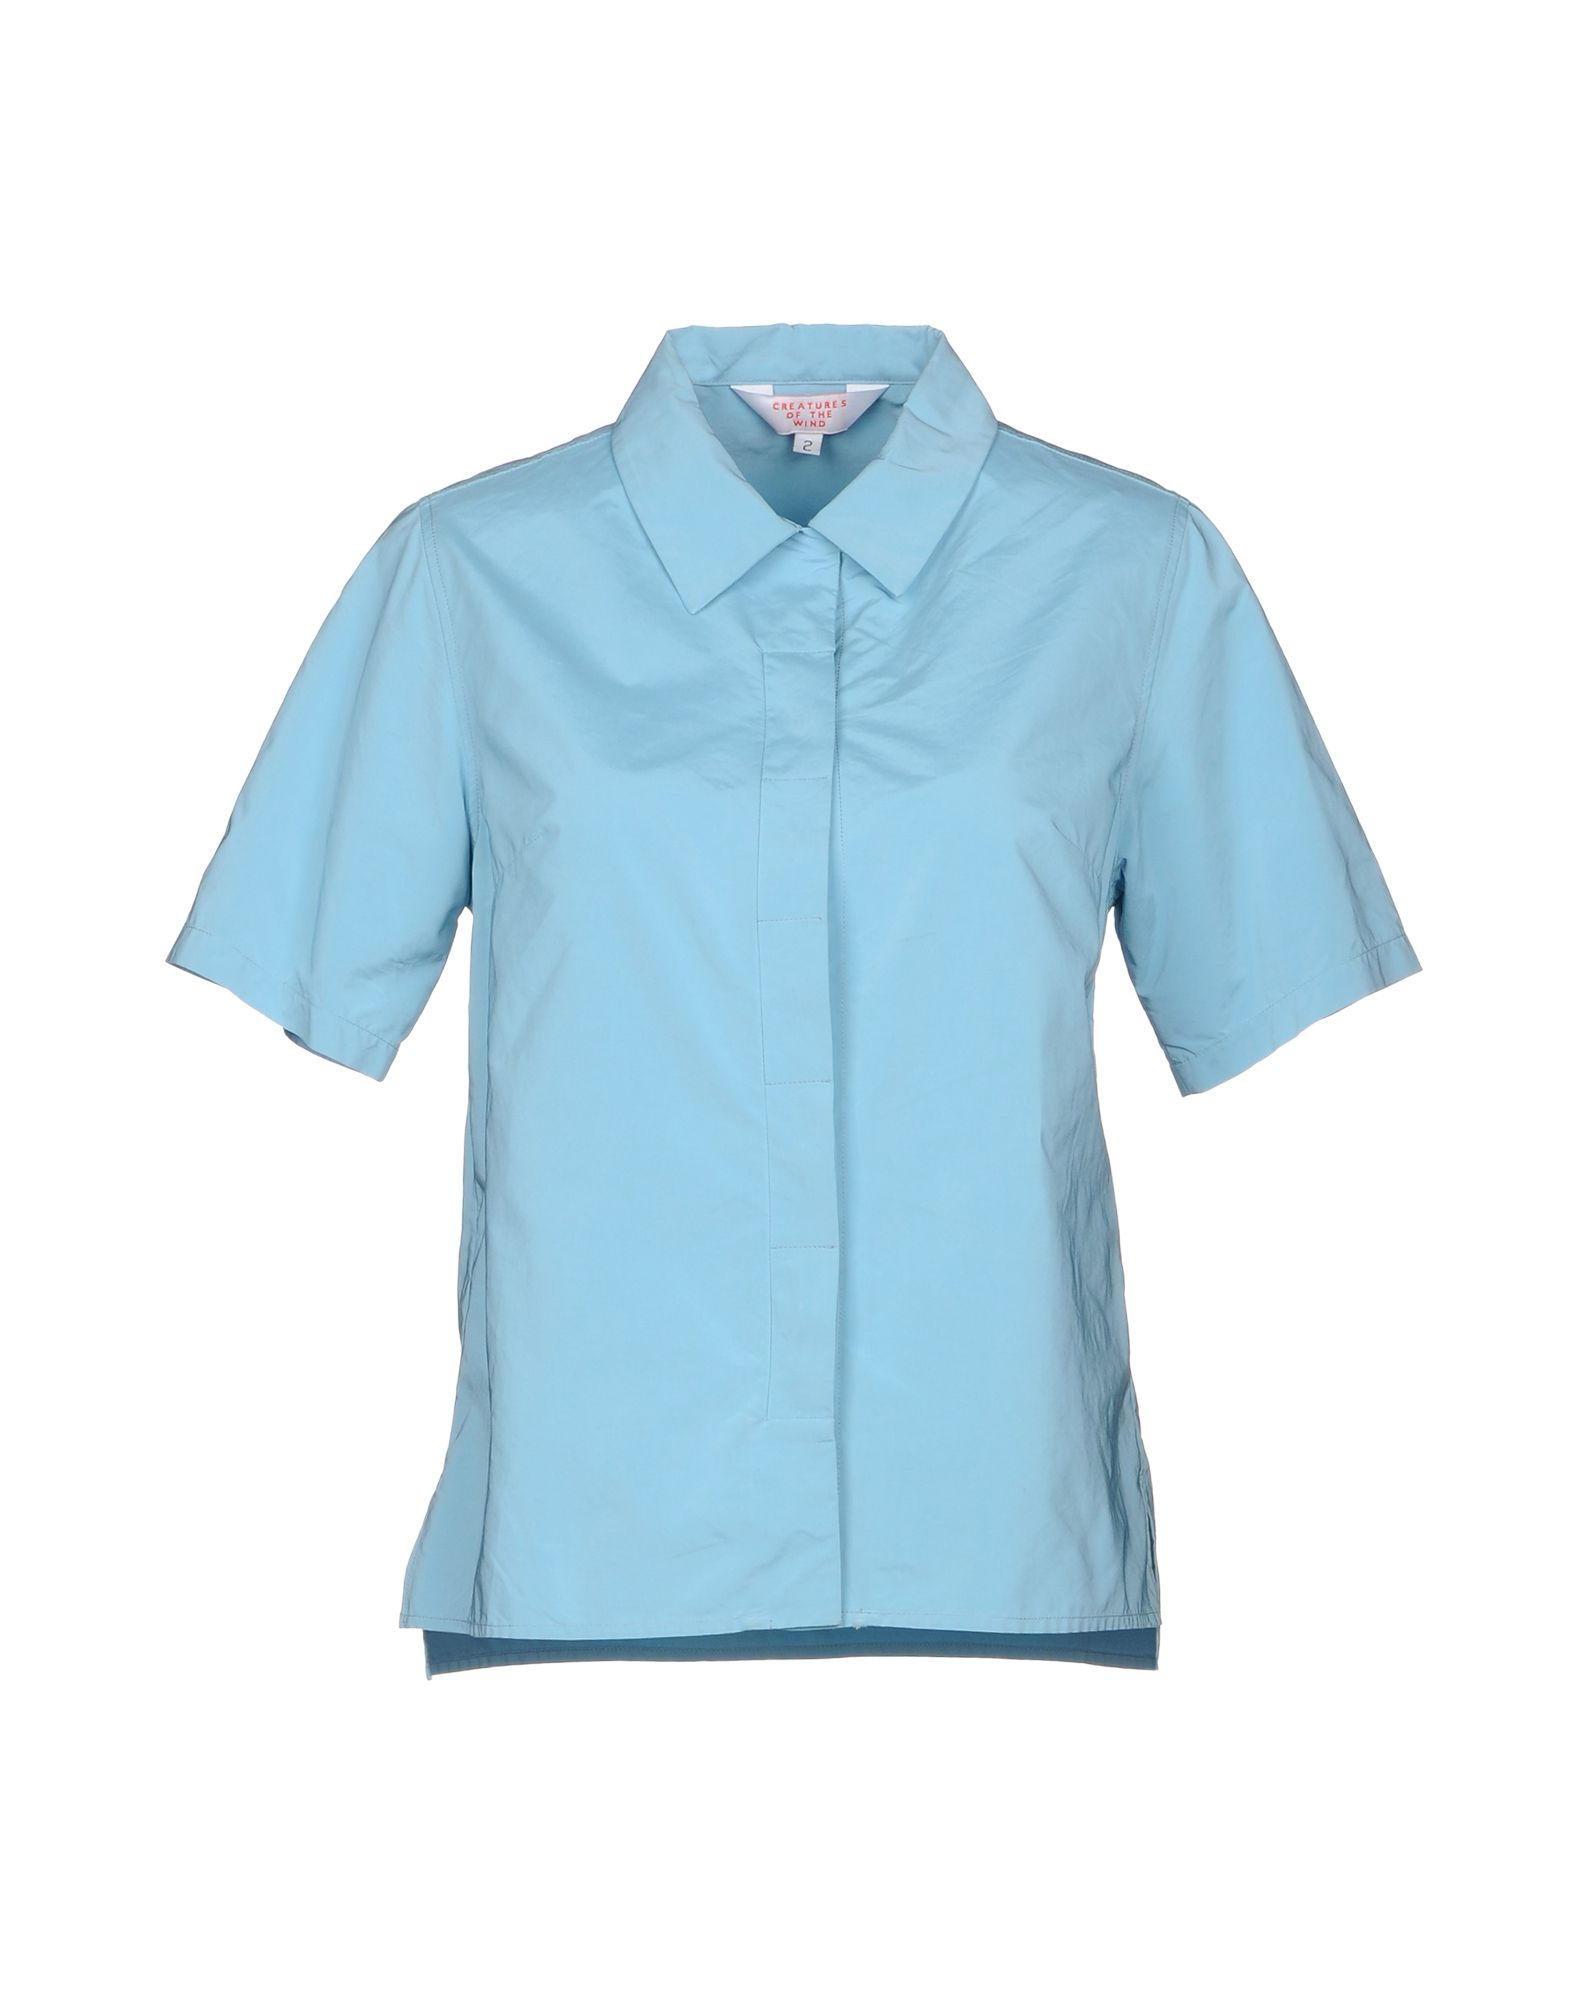 CREATURES OF THE WIND Solid Color Shirts & Blouses in Sky Blue